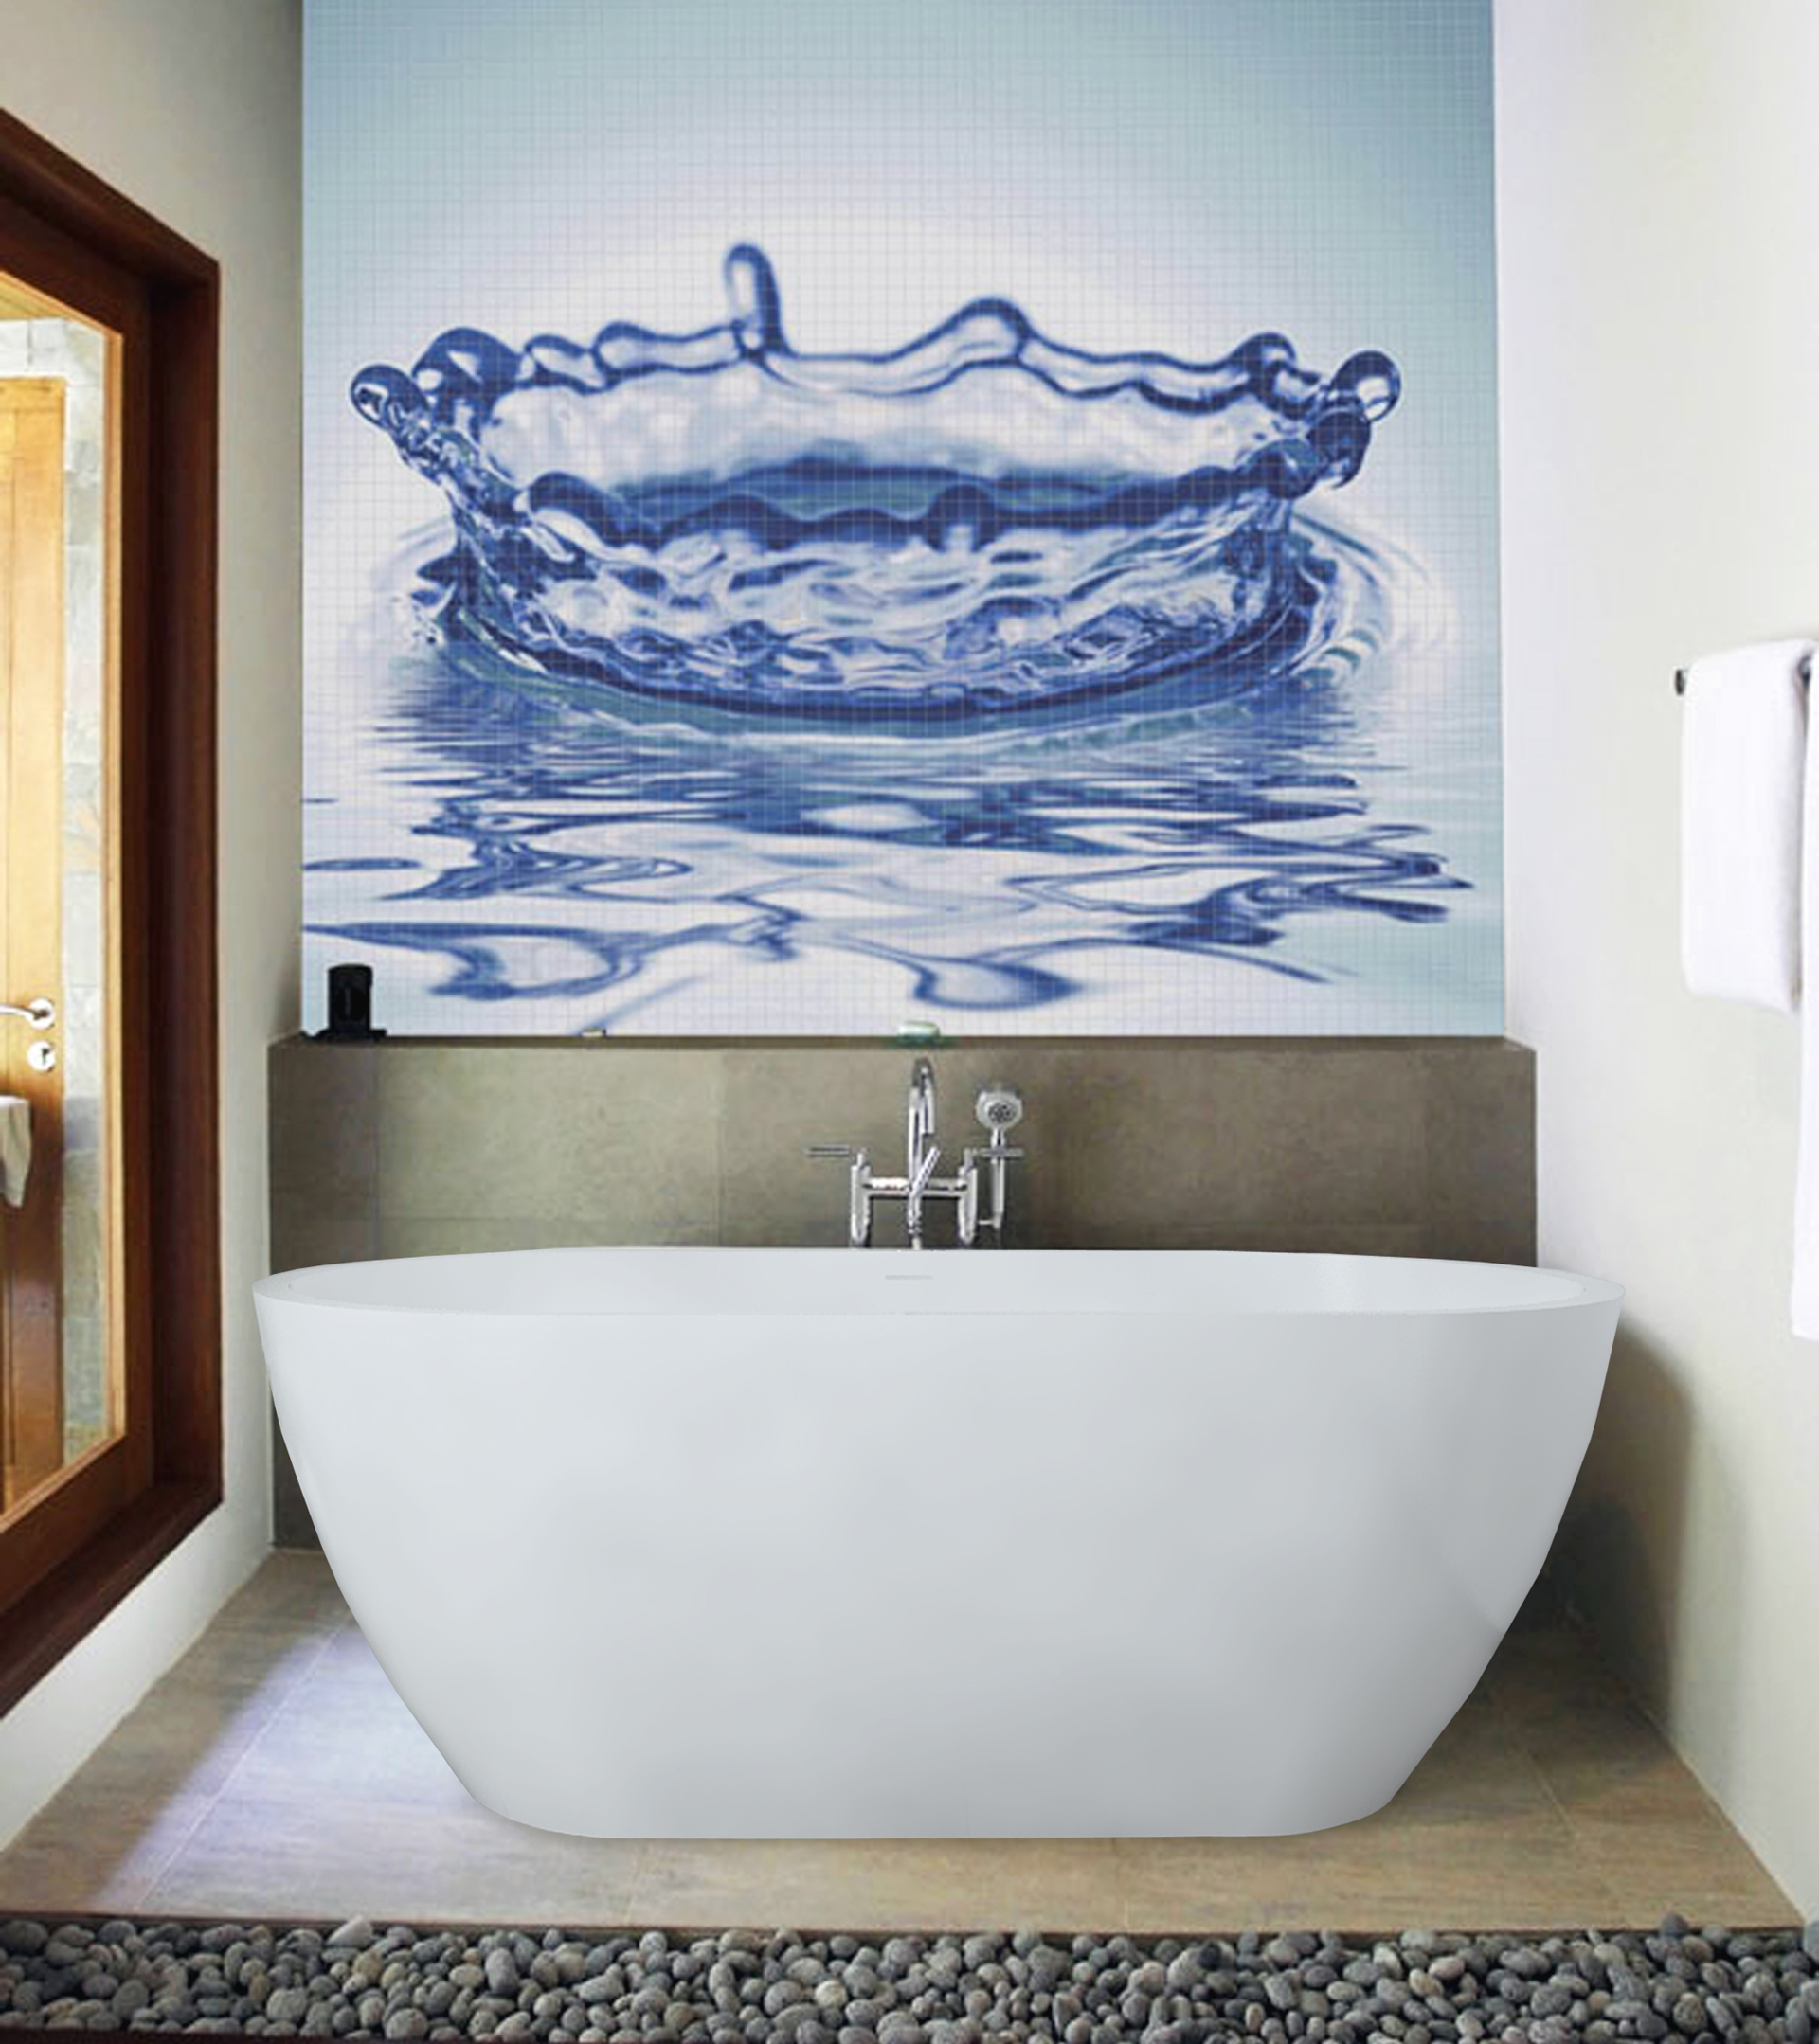 Aquatica PureScape 617B-M Freestanding AquaStone™ Bathtub